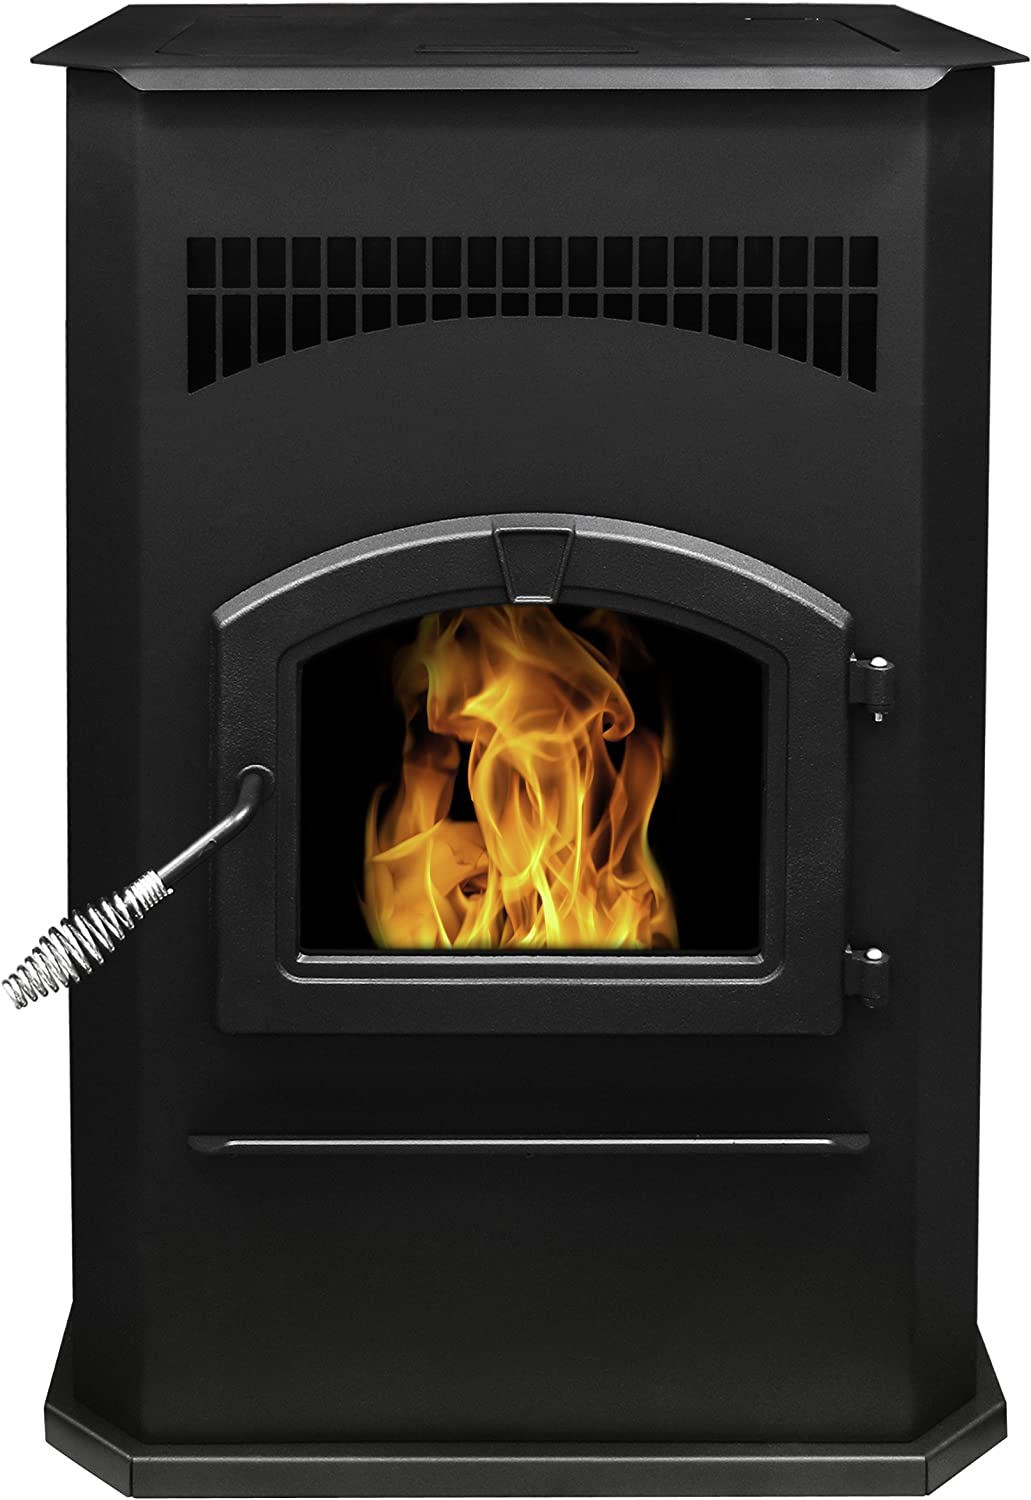 The 8 Best Pellet Wood Stoves For Heating - Get Your Home